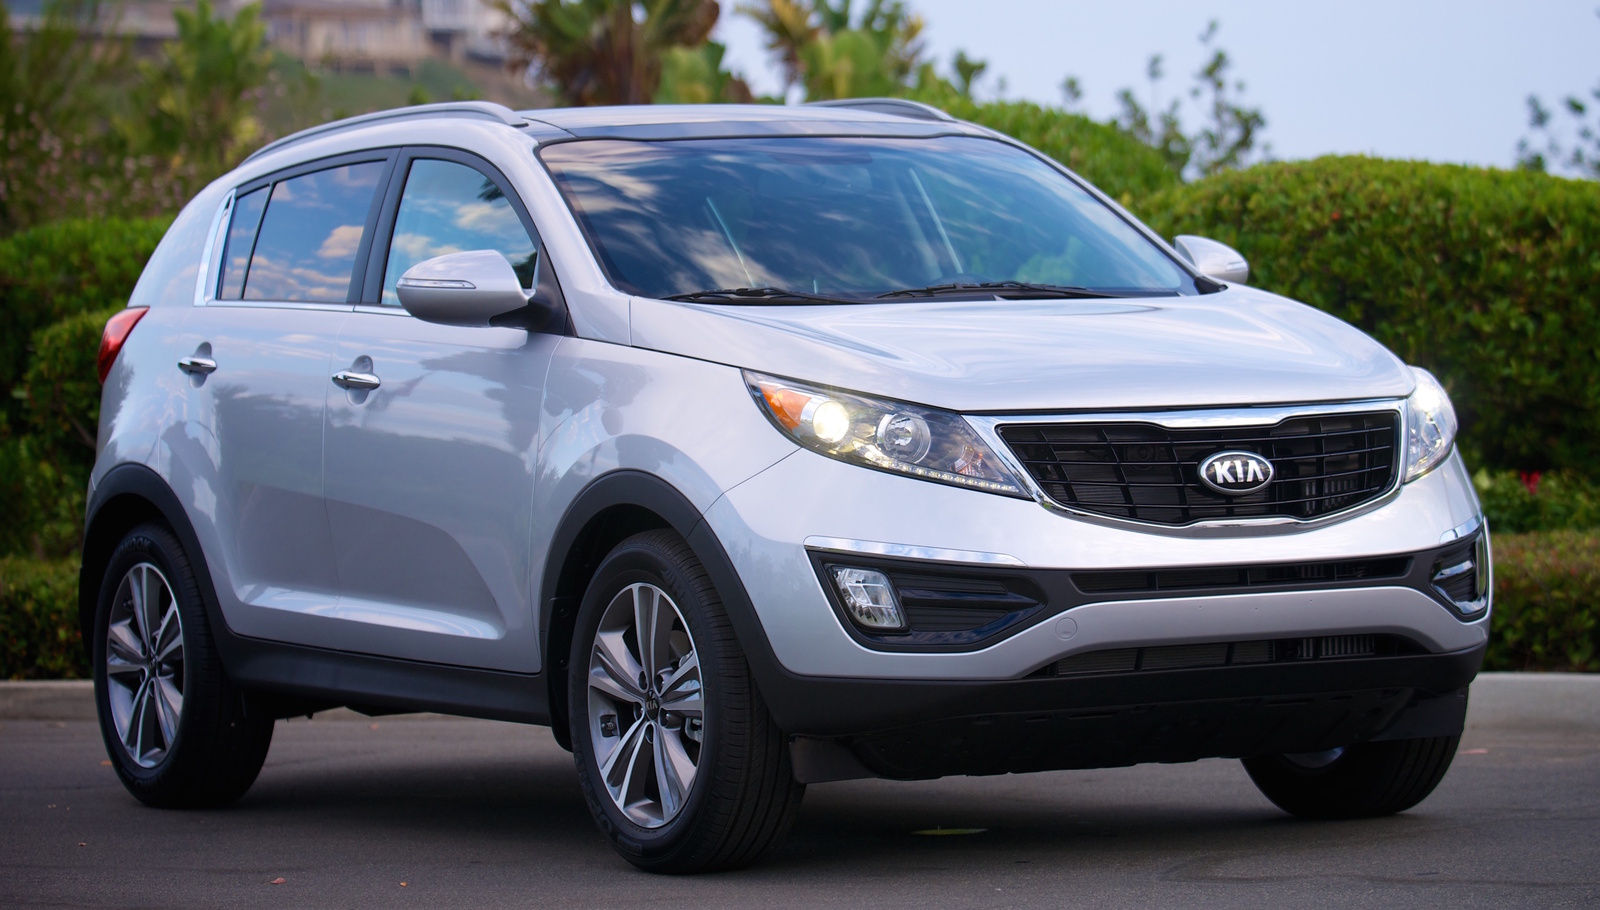 2016 kia sportage overview cargurus. Black Bedroom Furniture Sets. Home Design Ideas